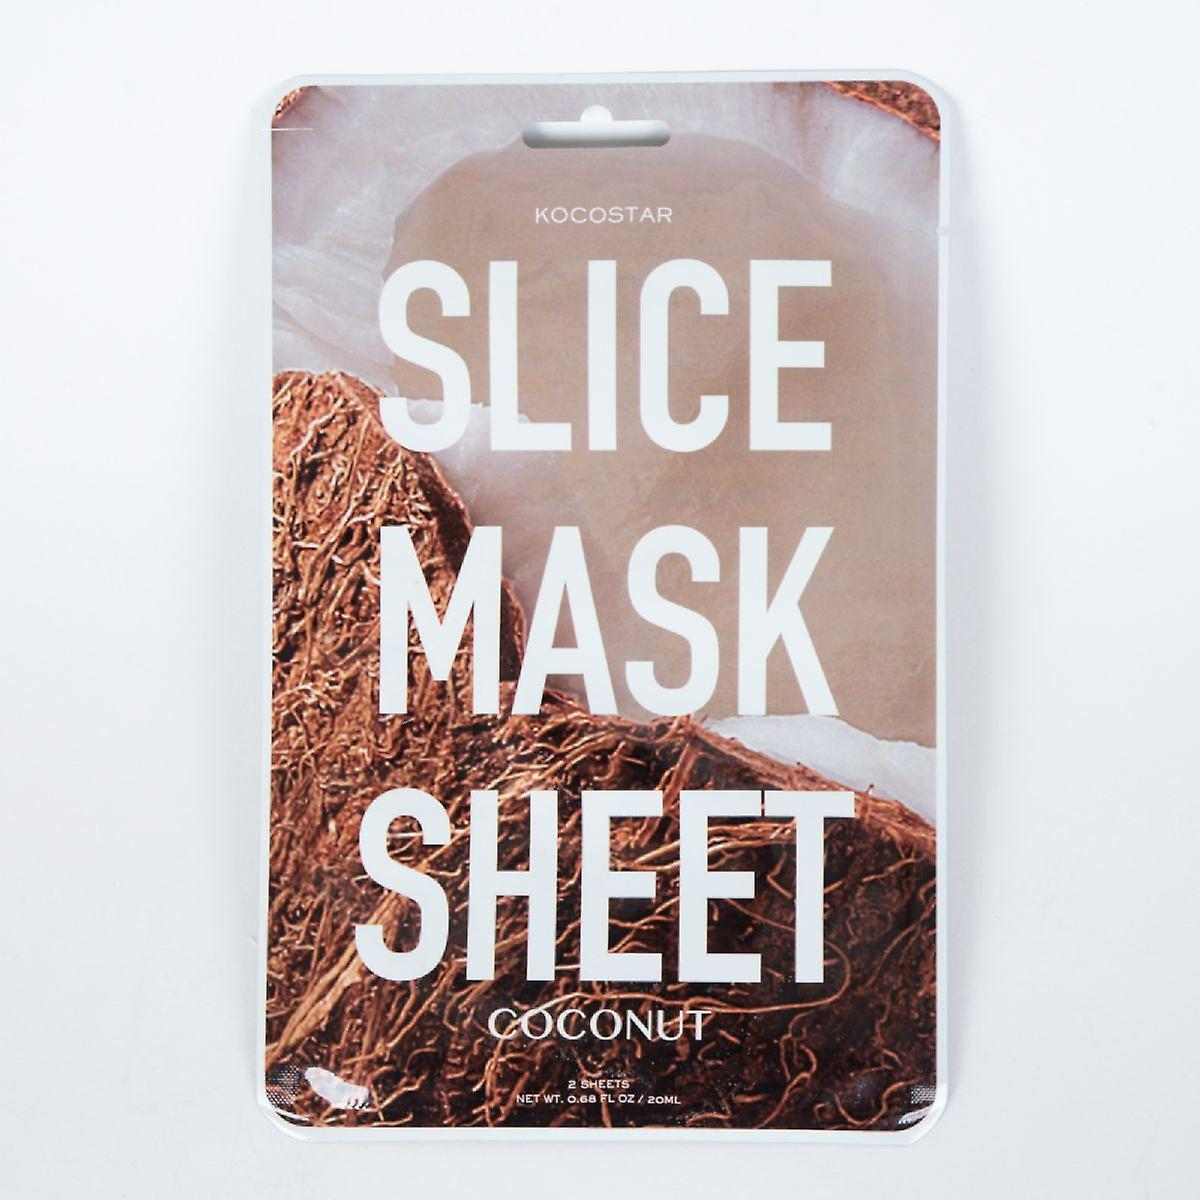 Kocostar Coconut Slice Mask - Contains 12 Patches